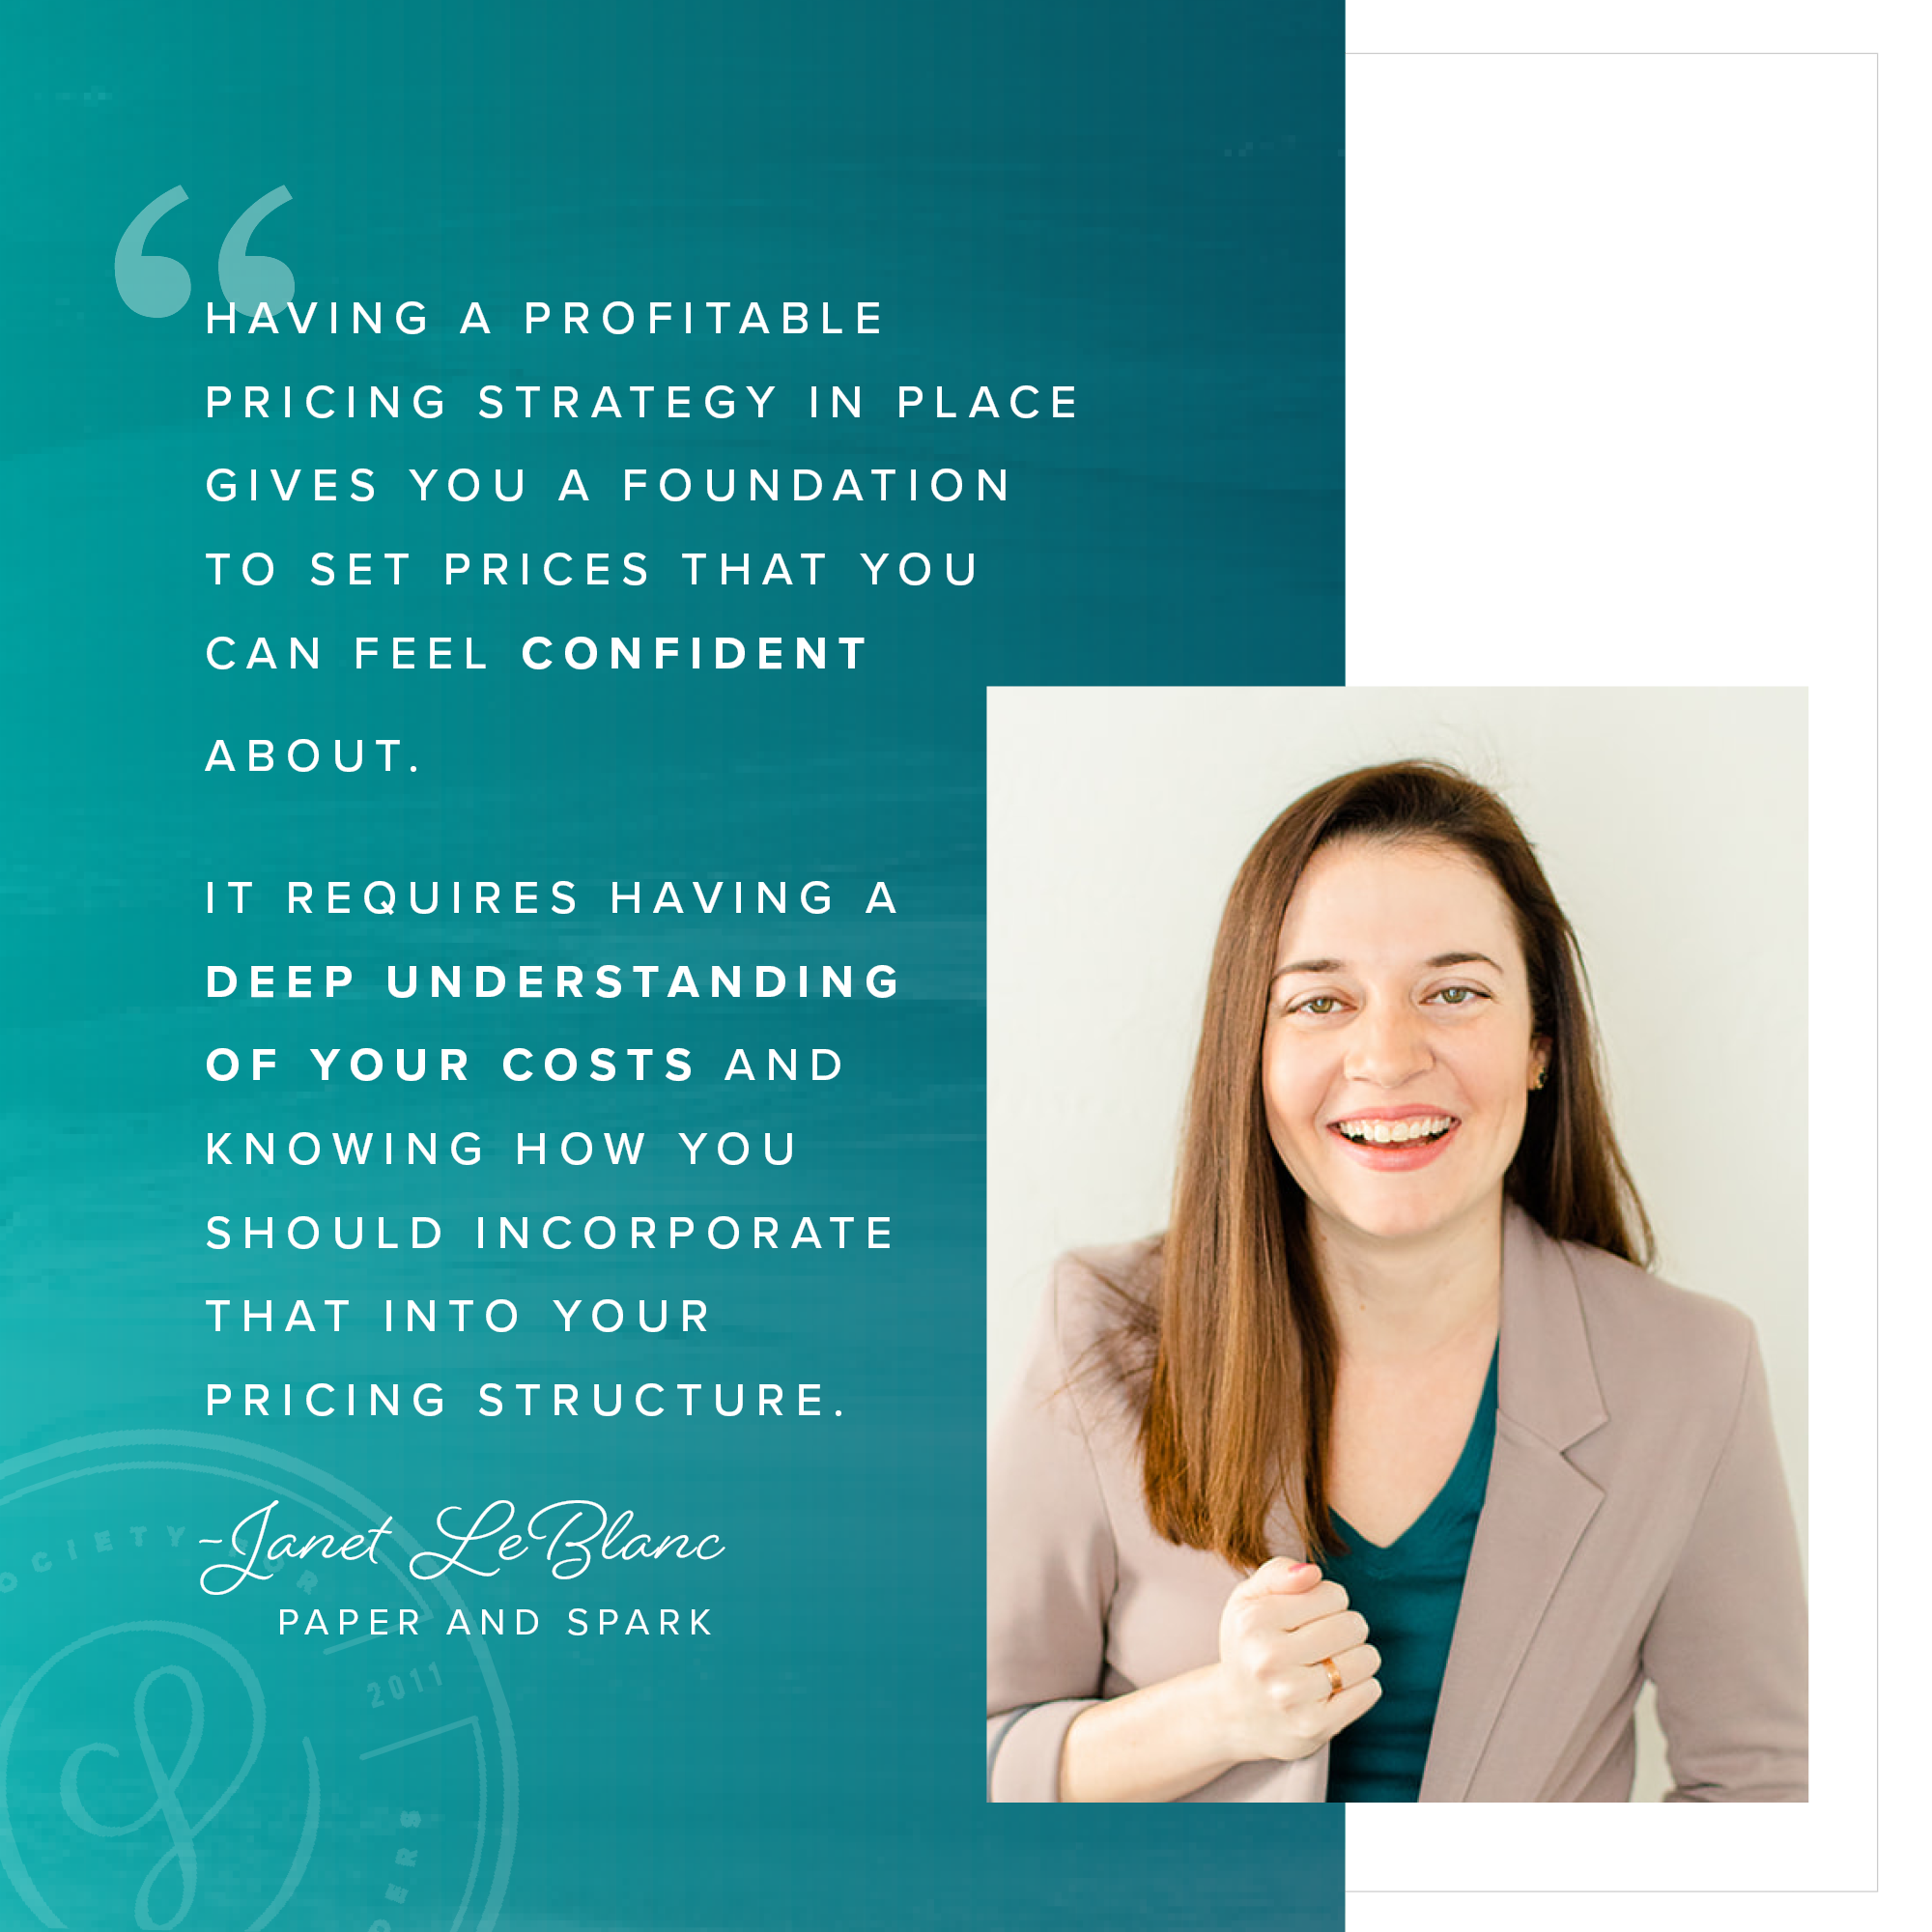 Pricing Strategy - Janet LeBlanc of Paper and Spark